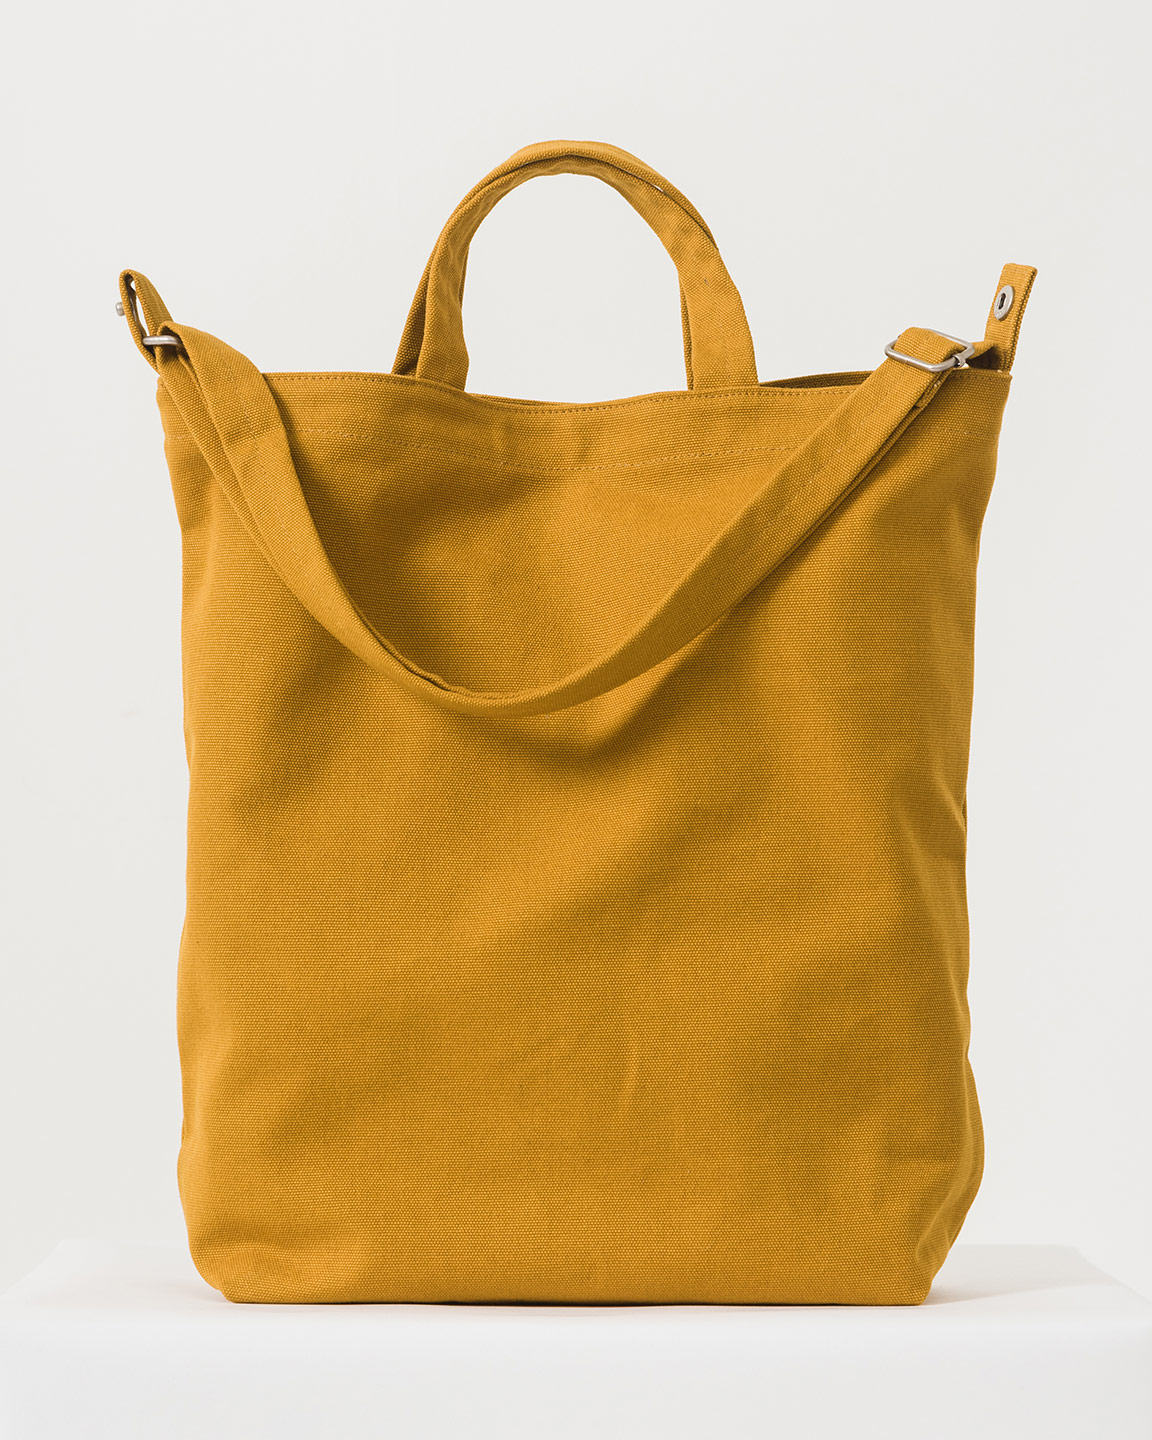 craft gift guide baggu duck bag holiday